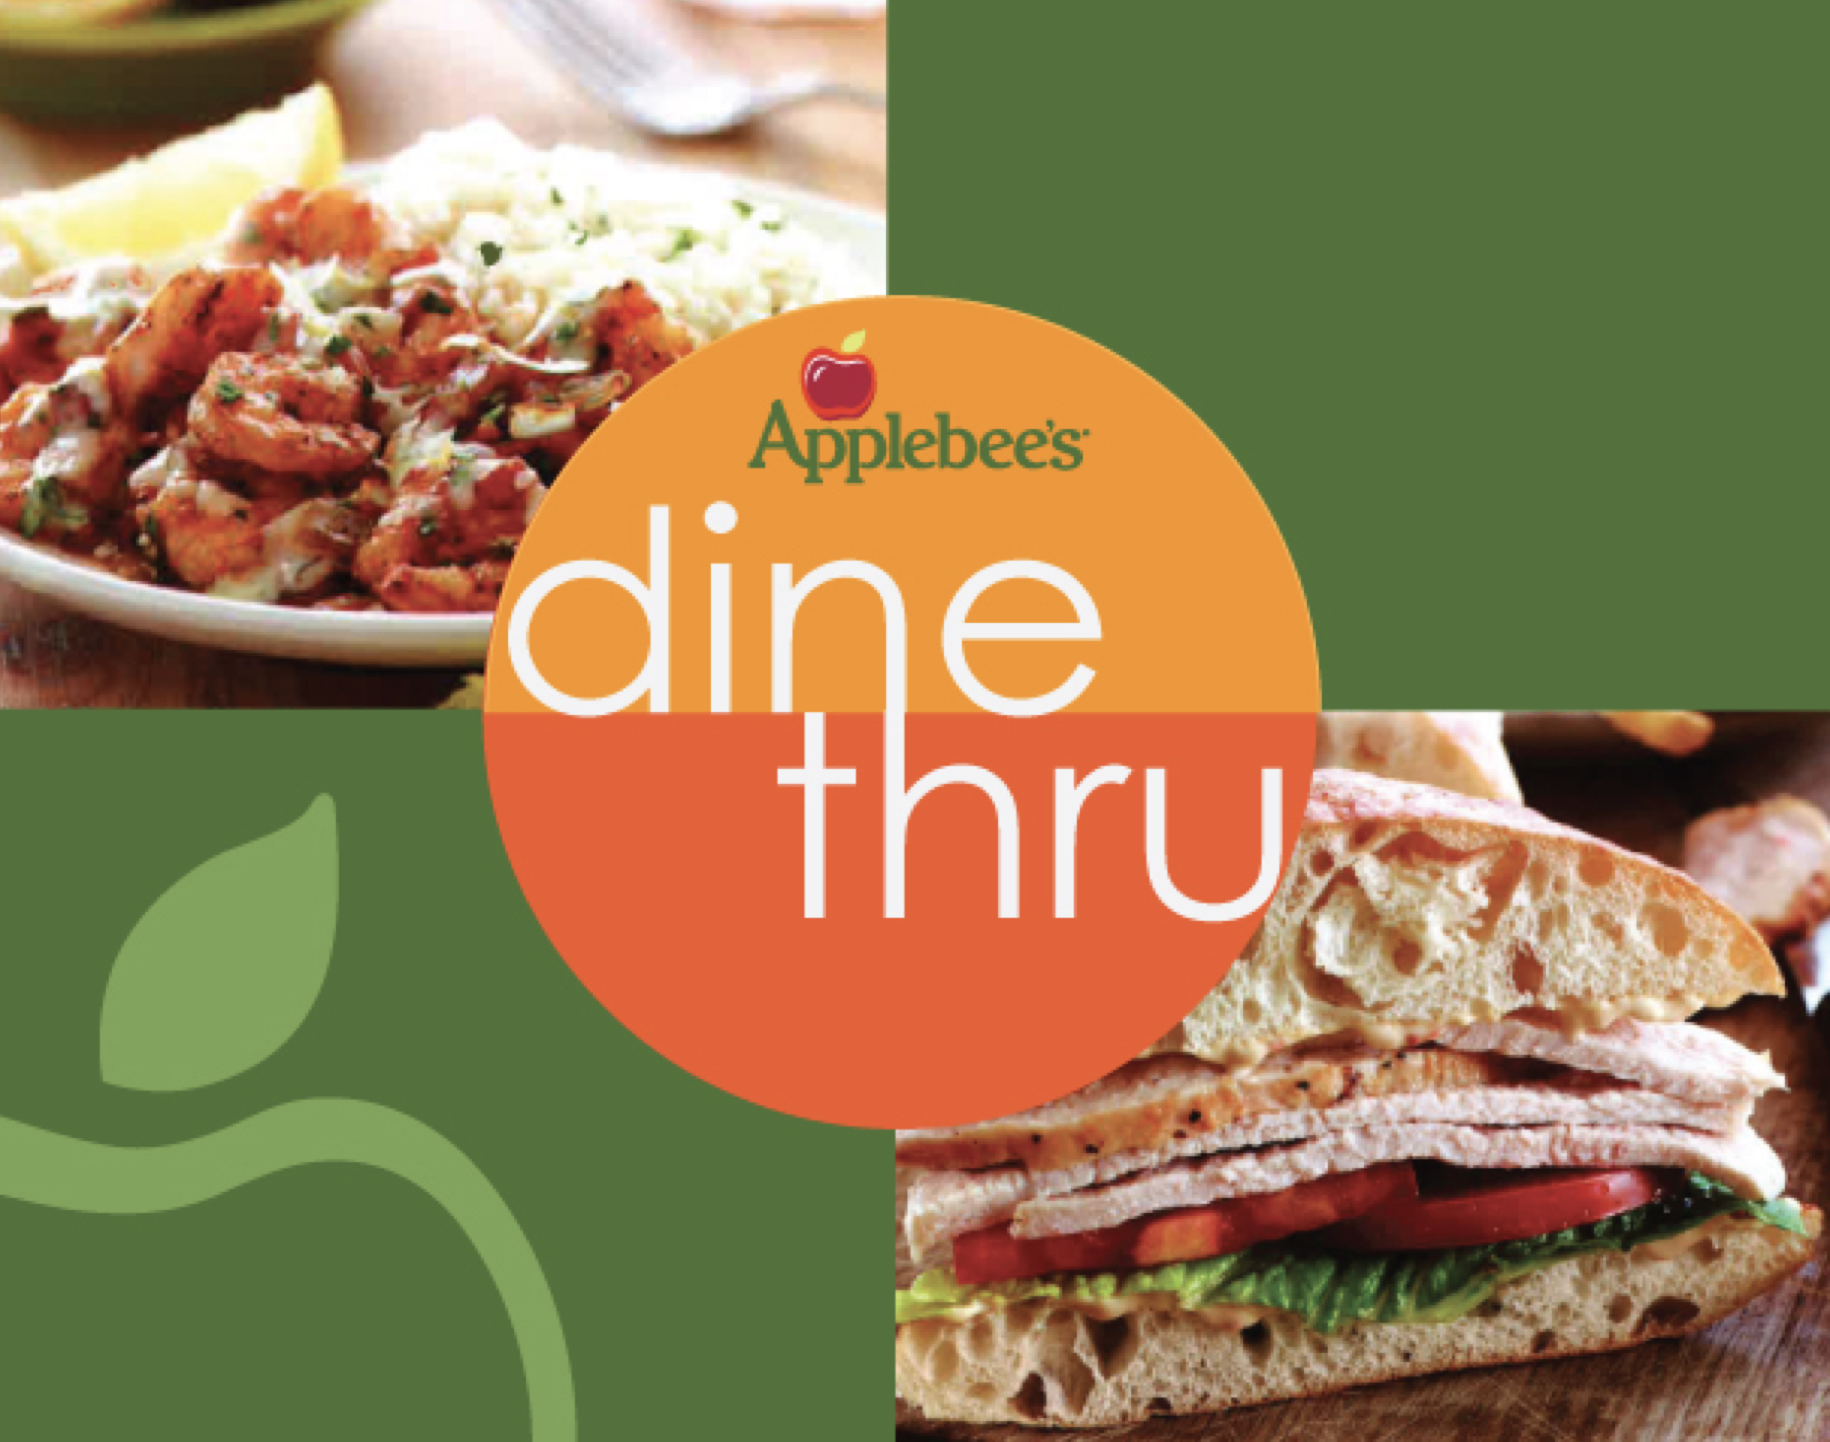 APPLEBEE'S FAST LUNCH CONCEPT